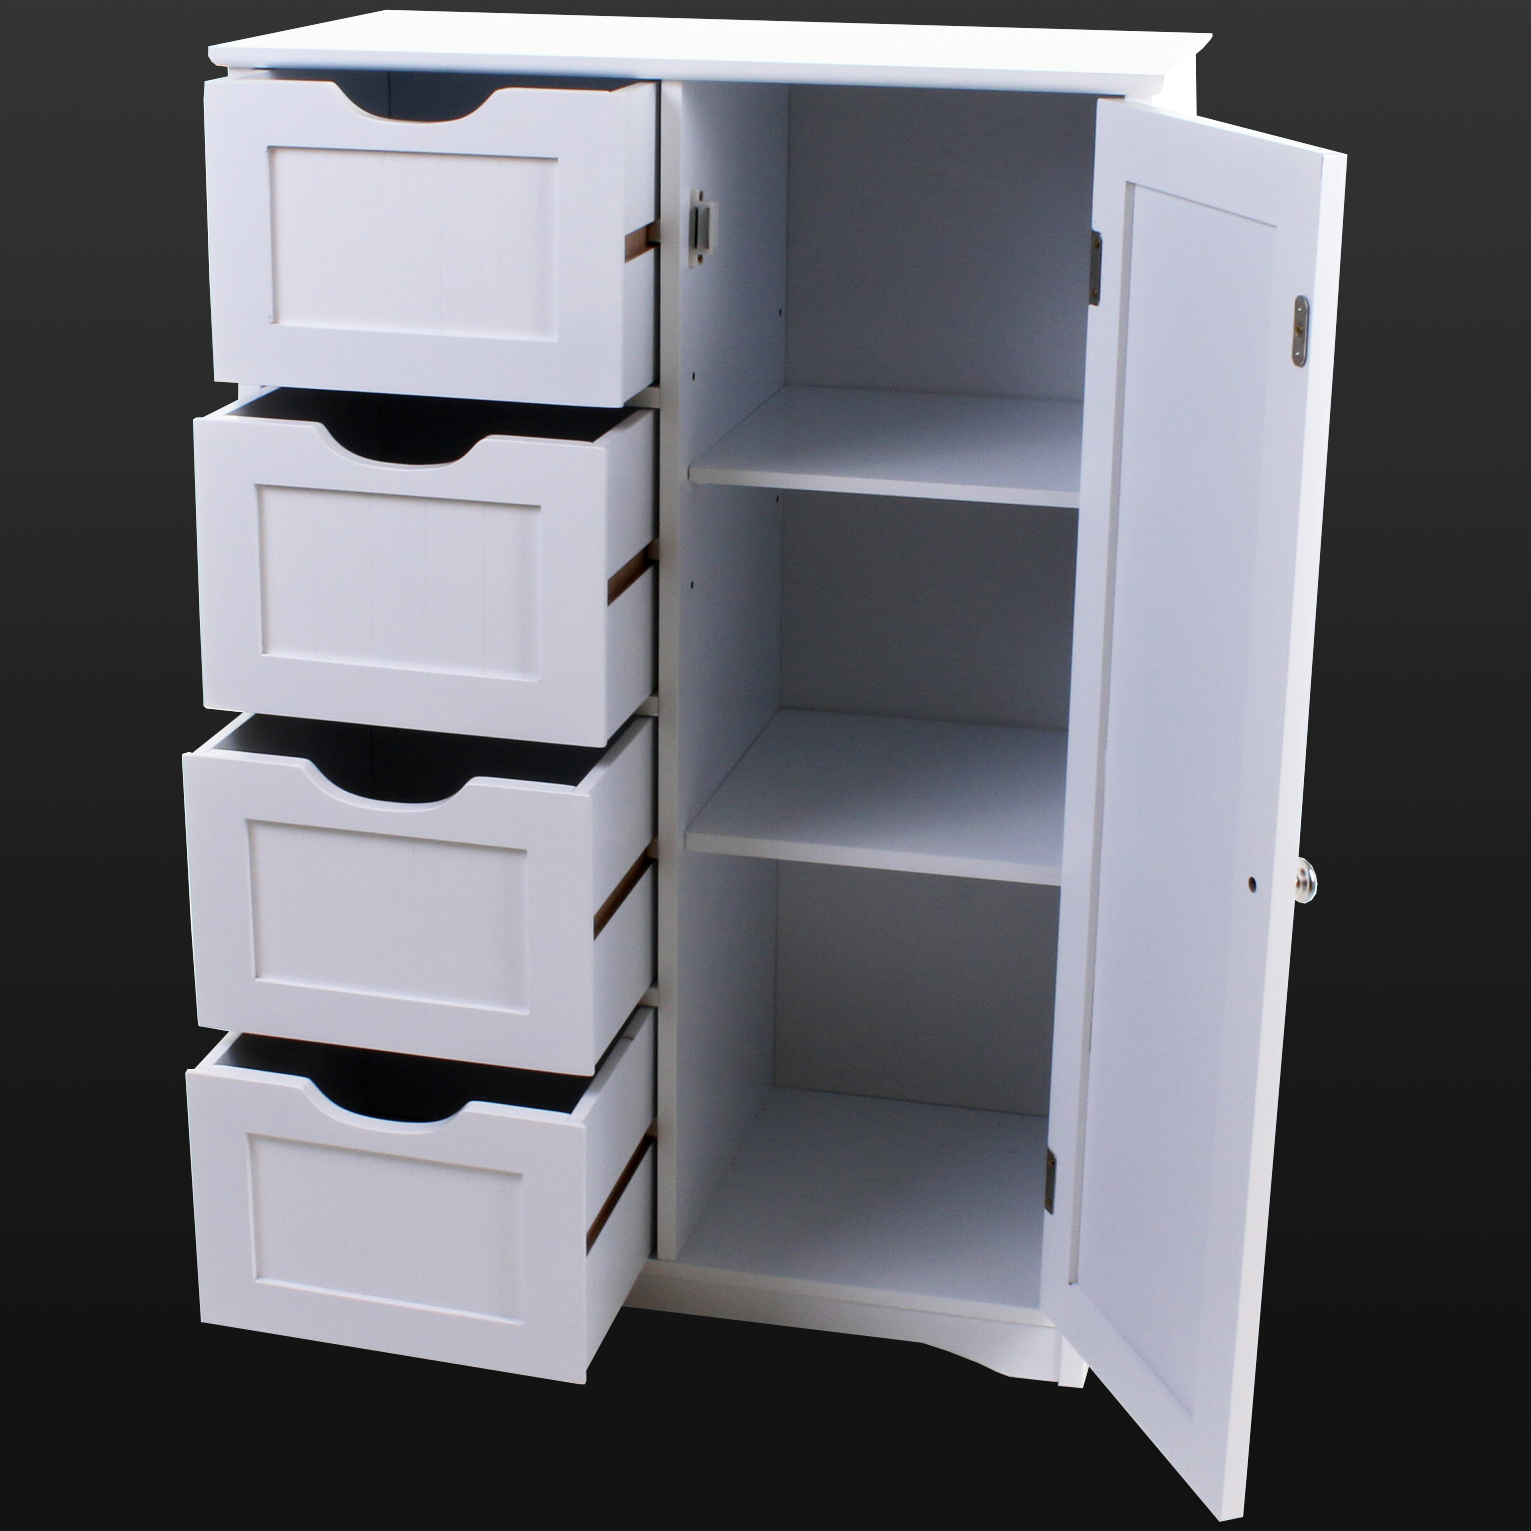 4 drawer bathroom cabinet storage unit wooden chest 19923 | mbt 4dunt